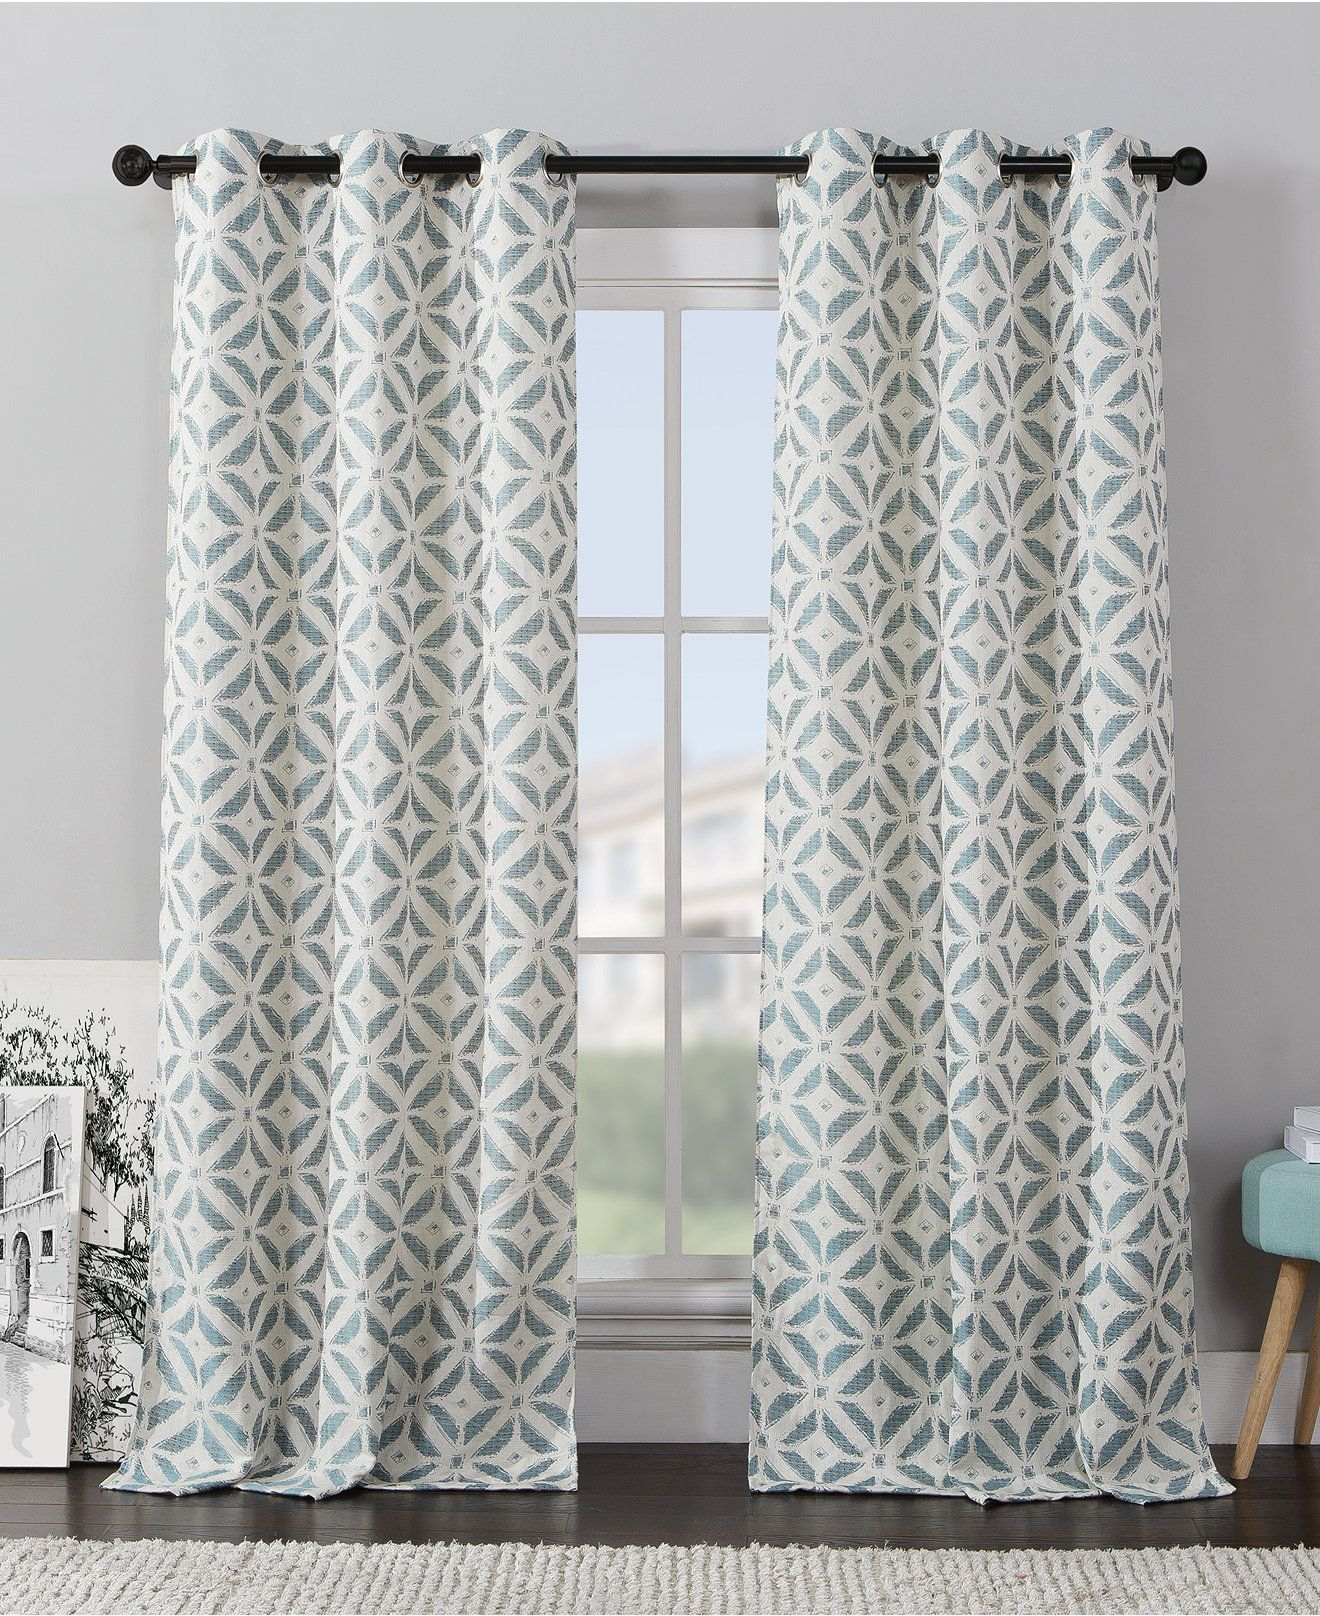 Erlene Window Treatments Murano 26 By 84 Panel Macy S